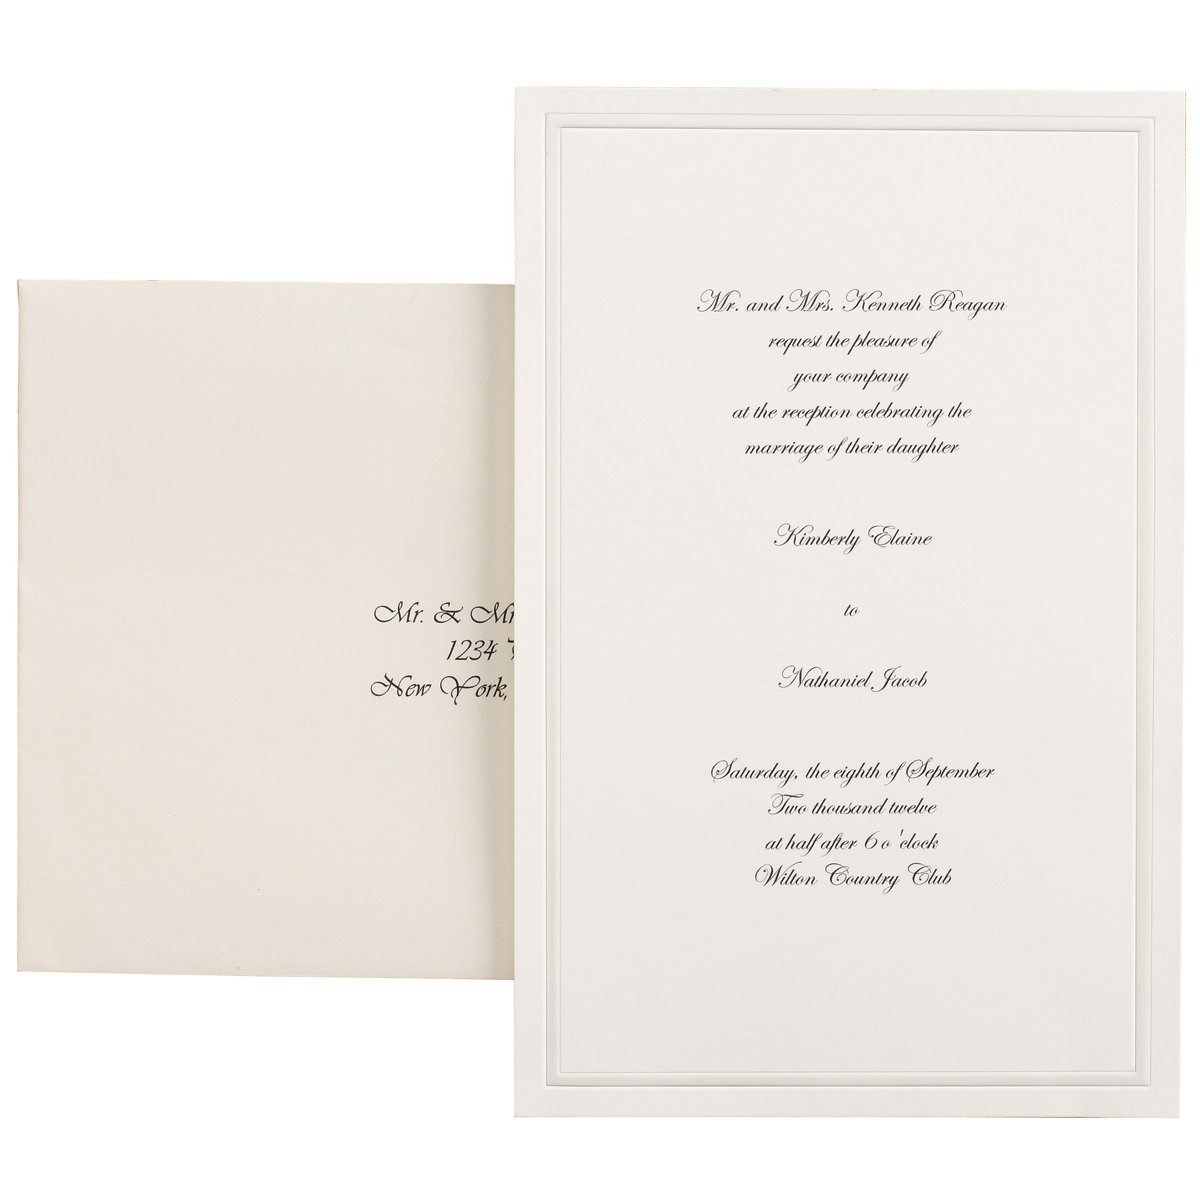 Amazon wilton 100 pack single border invitation ivory kitchen amazon wilton 100 pack single border invitation ivory kitchen dining stopboris Image collections